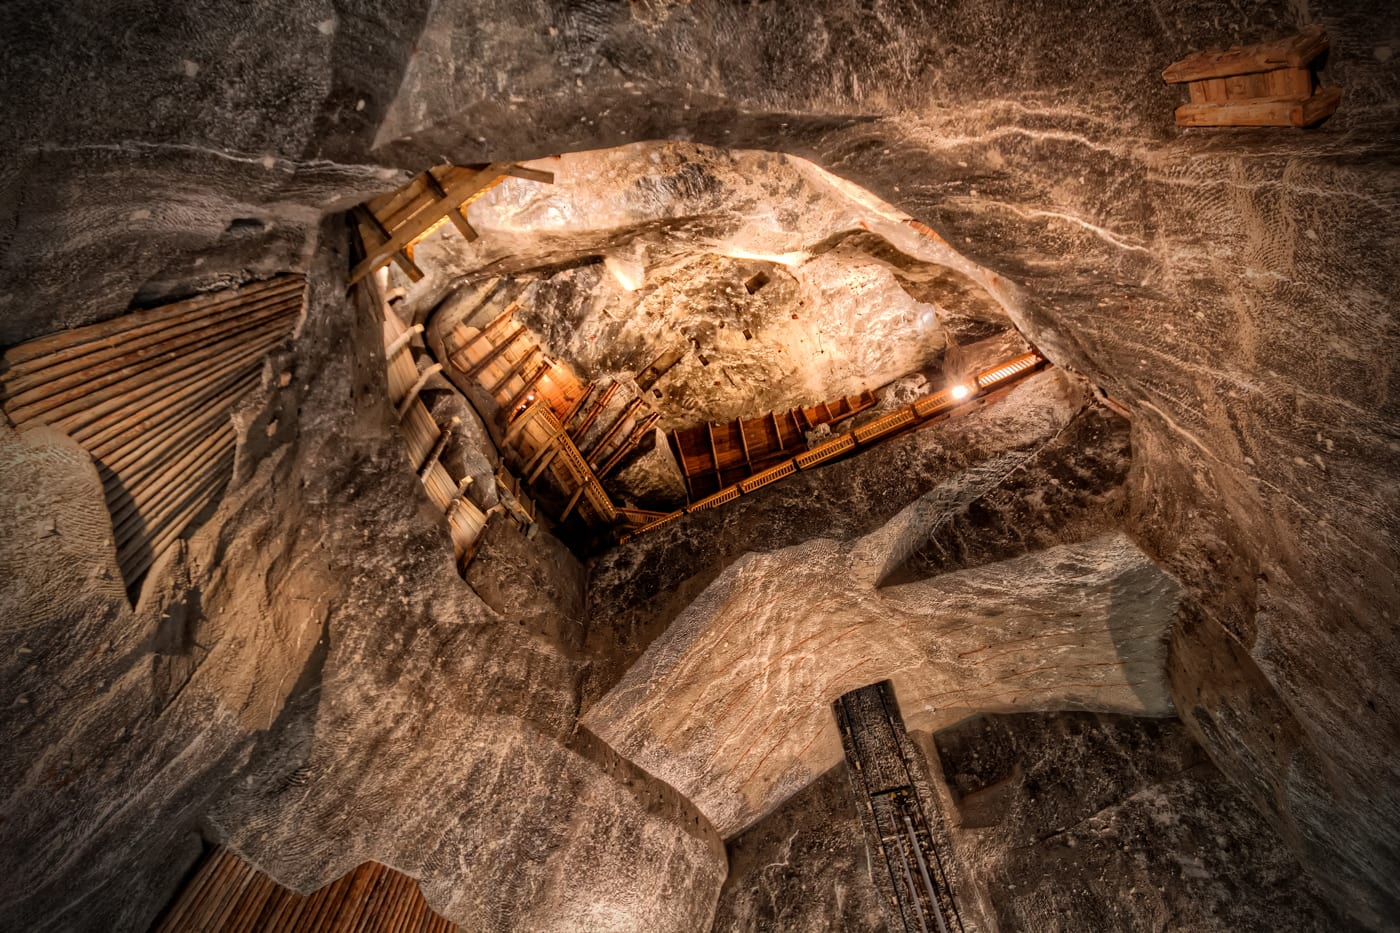 Stanislaw Staszic Chamber in the Wieliczka Salt Mine